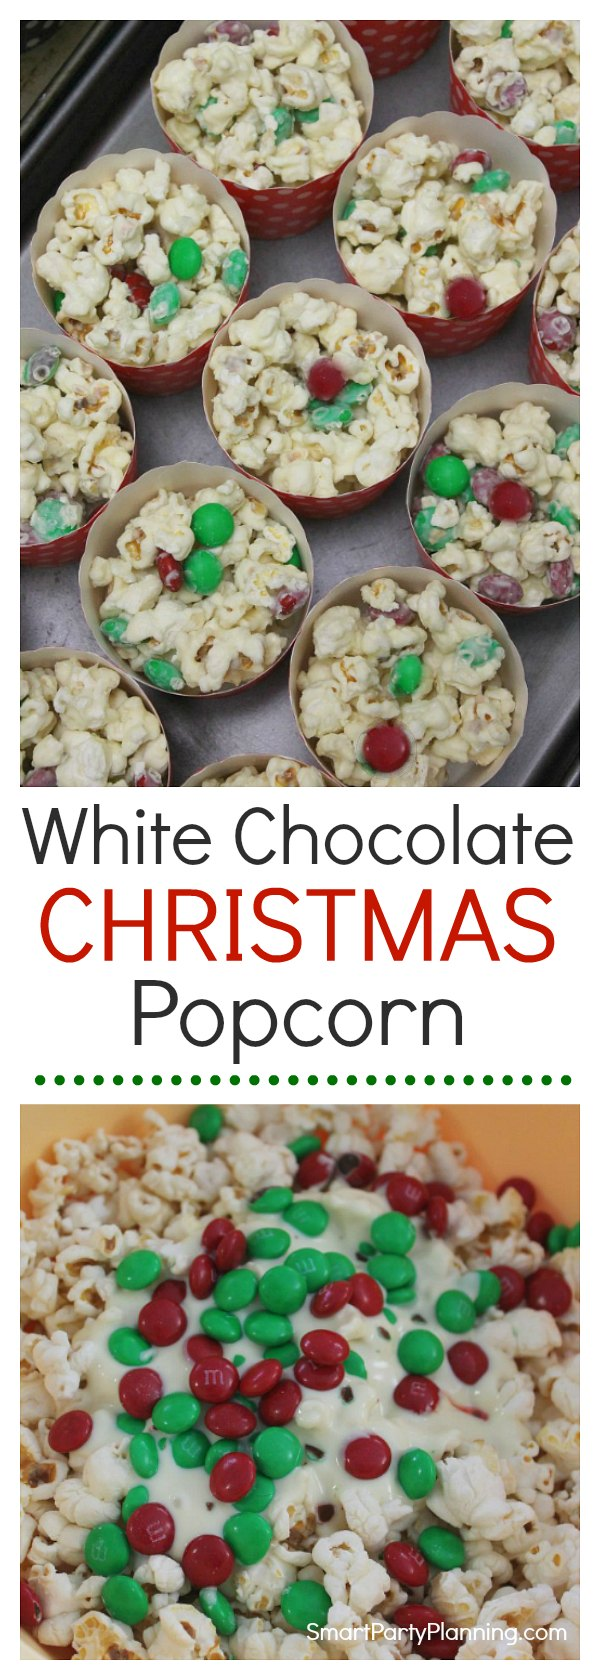 The most amazing white chocolate popcorn recipe that includes M&M's. This Christmas popcorn is perfect for the holidays with it's red and green M&M's and it's sweet and salty combination. Need a treat for a different holiday? Simply switch the M&M chocolate colors to suit any other occasion. It's a super easy treat to make that guests will love to enjoy at parties or movie nights.